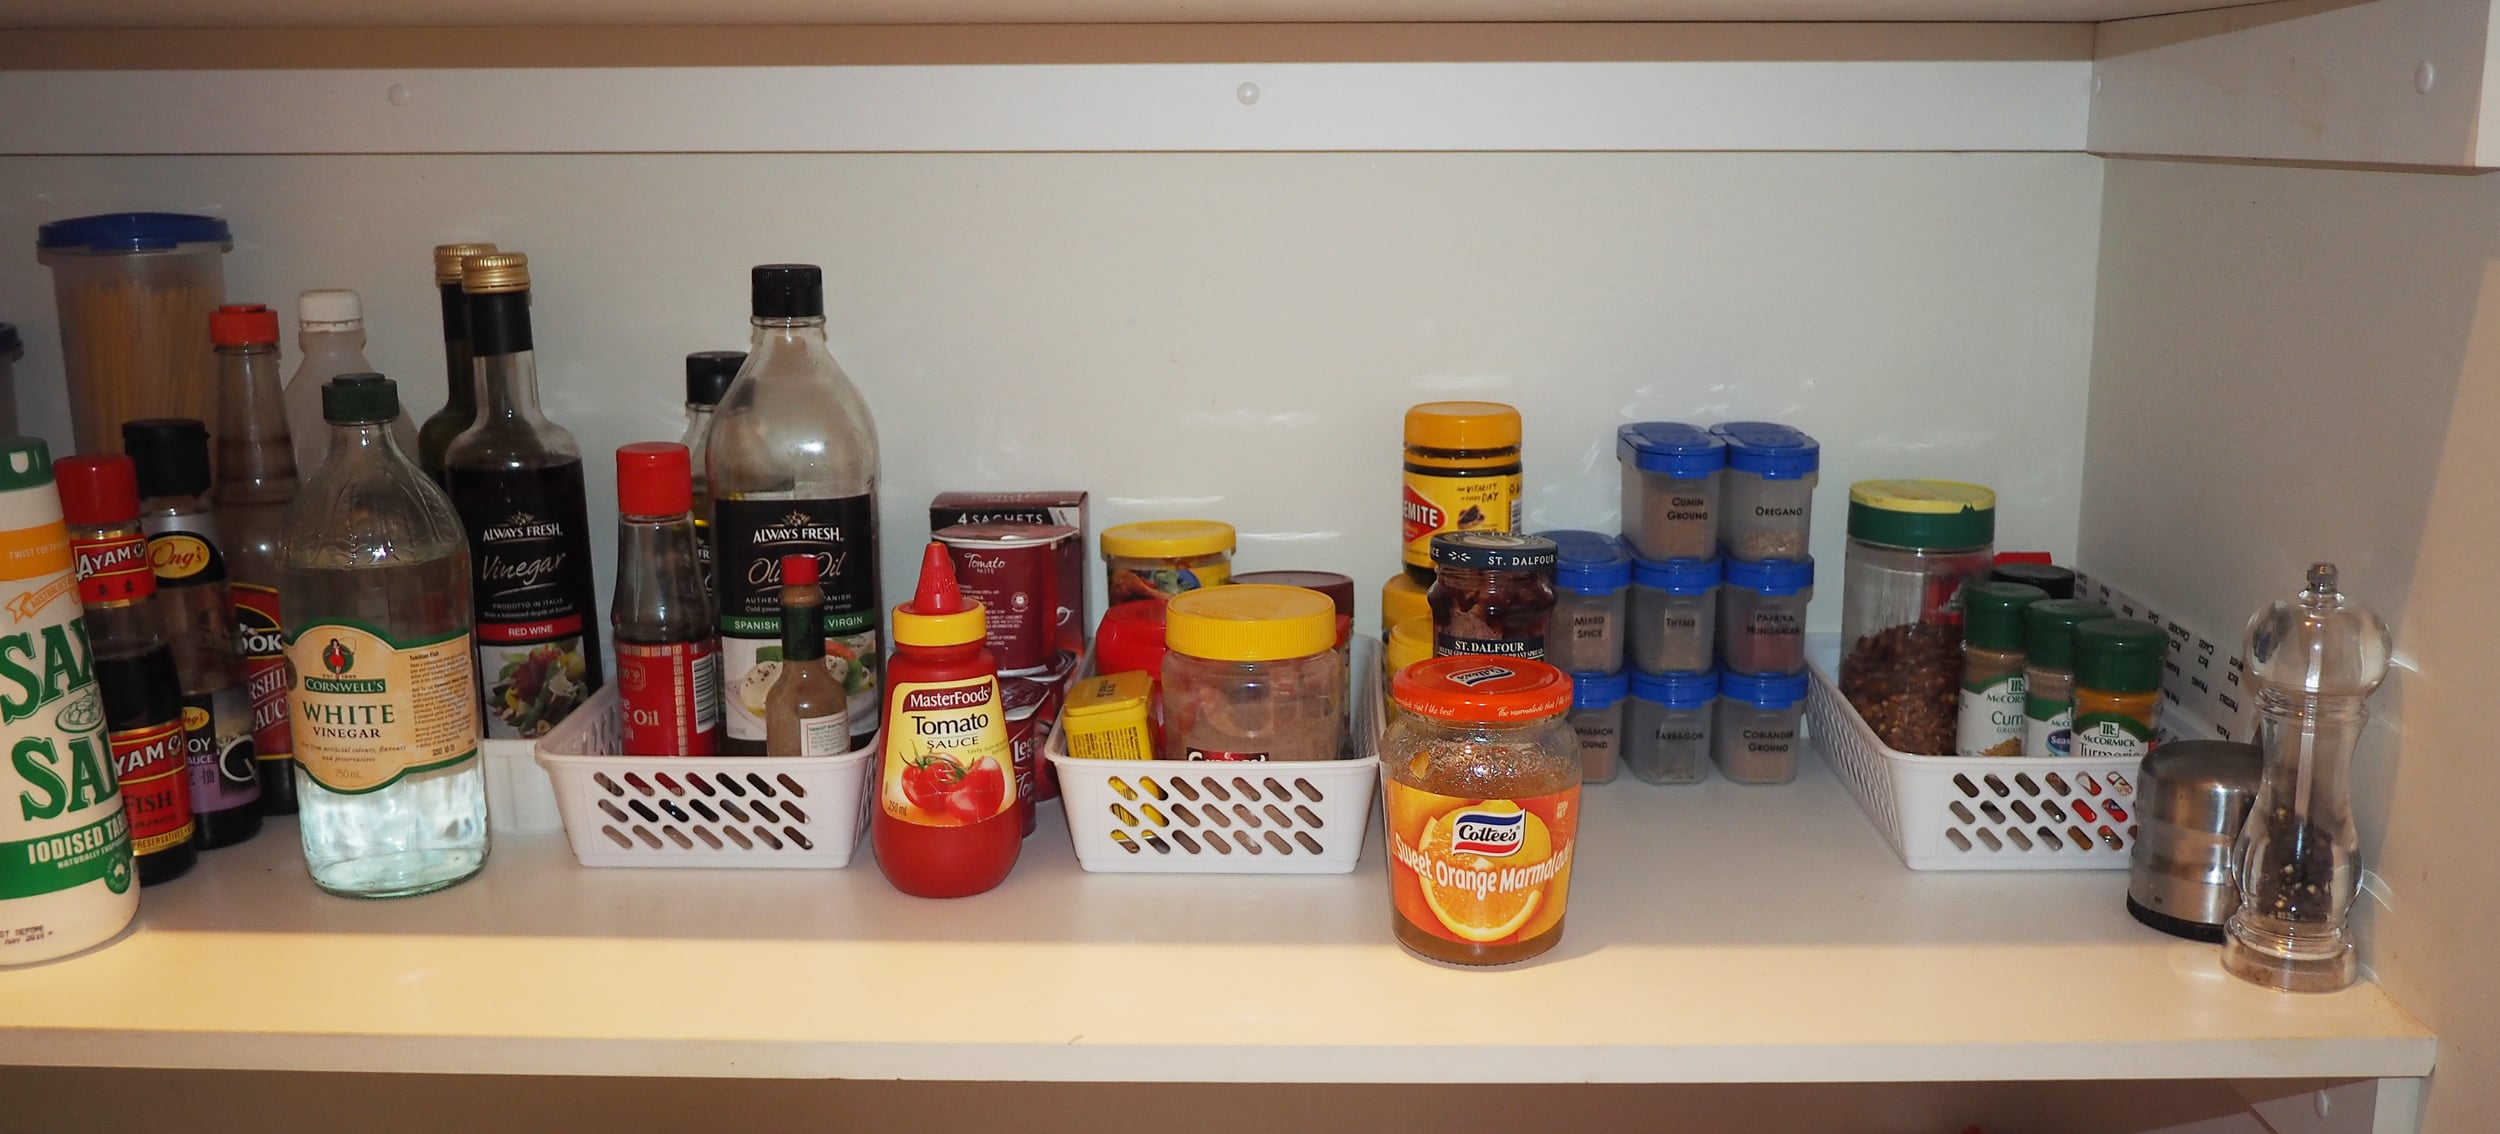 Organise condiments and spices by grouping like with like and using storage containers where possible